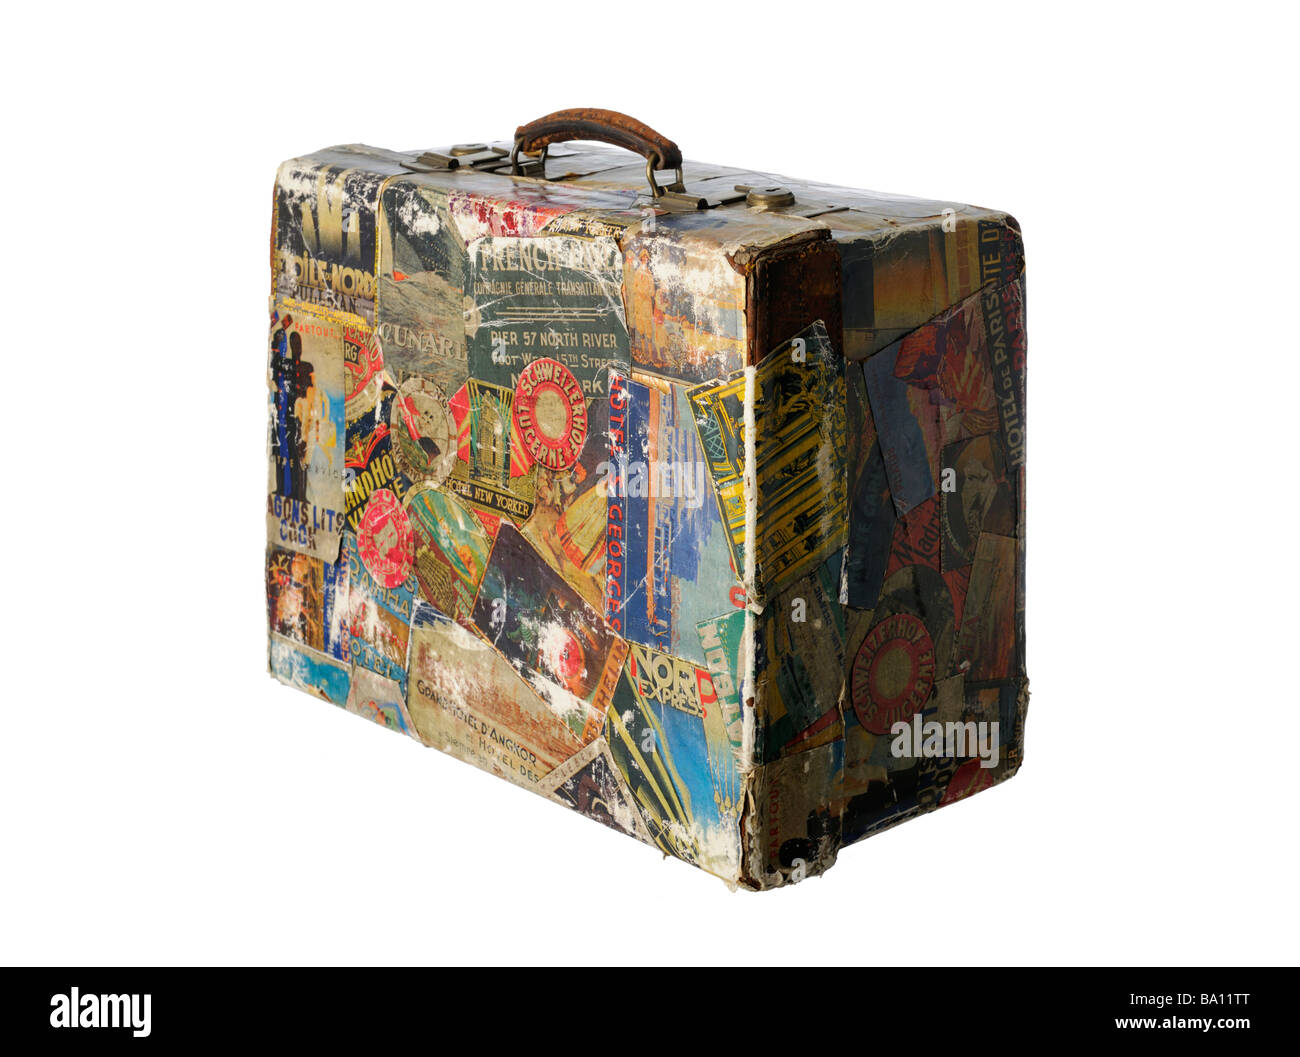 Vintage suitcase old travel stickers retro - Stock Image